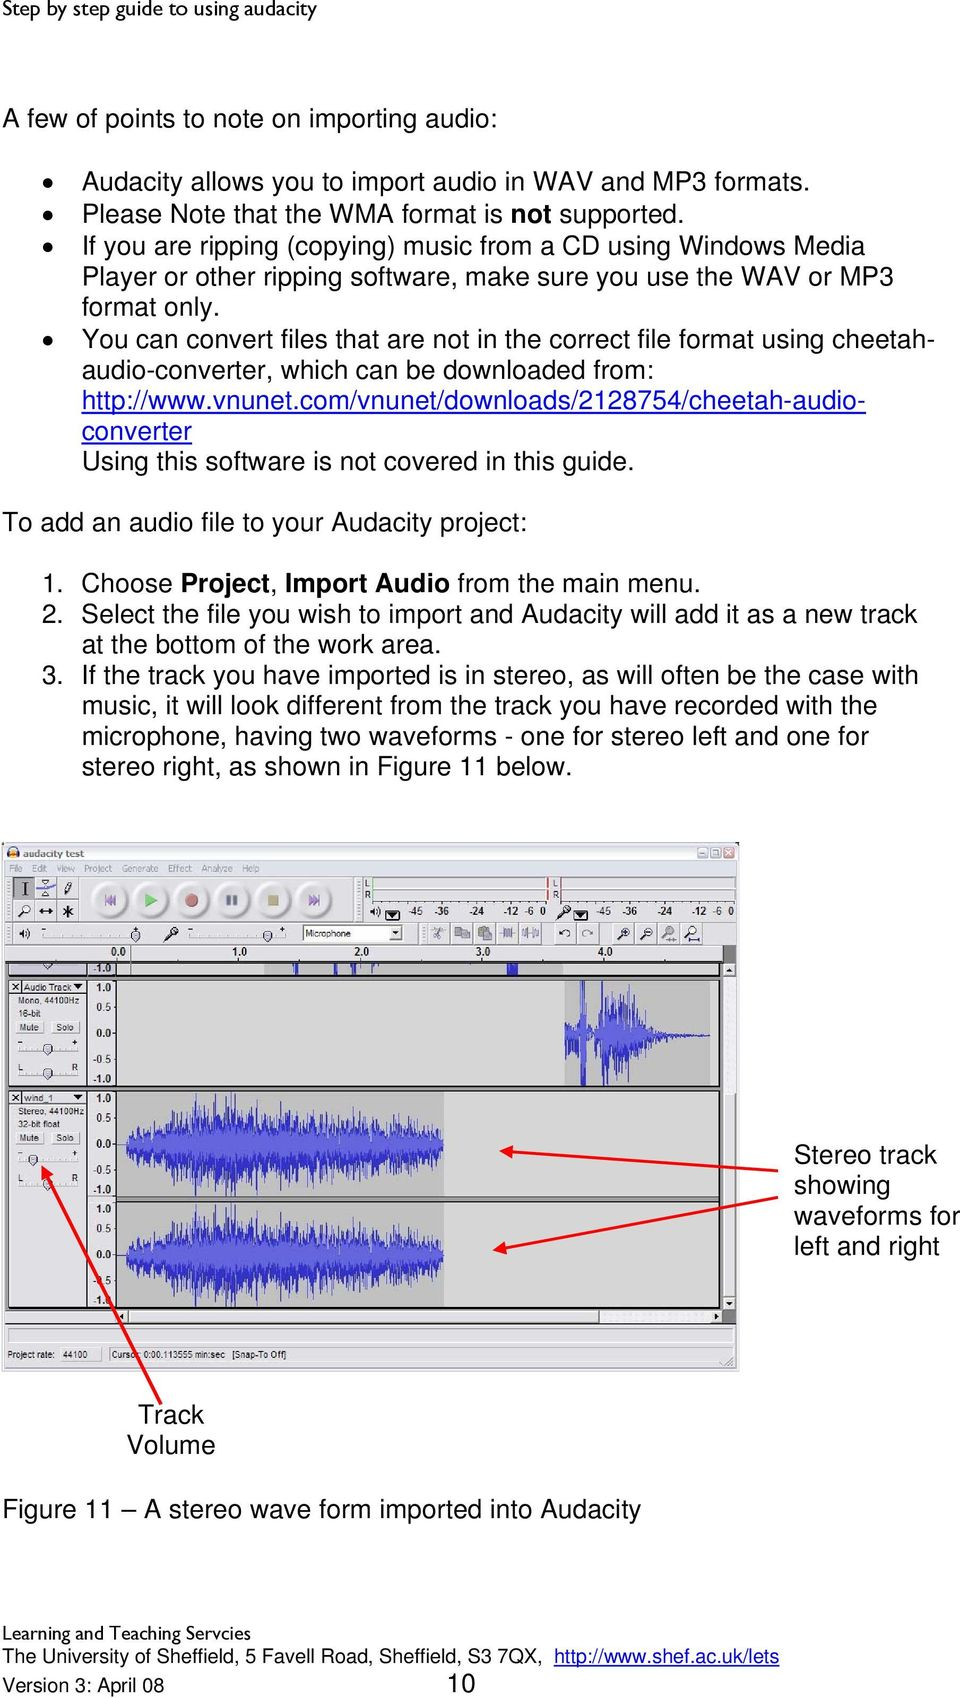 Step by step guide to using Audacity - PDF